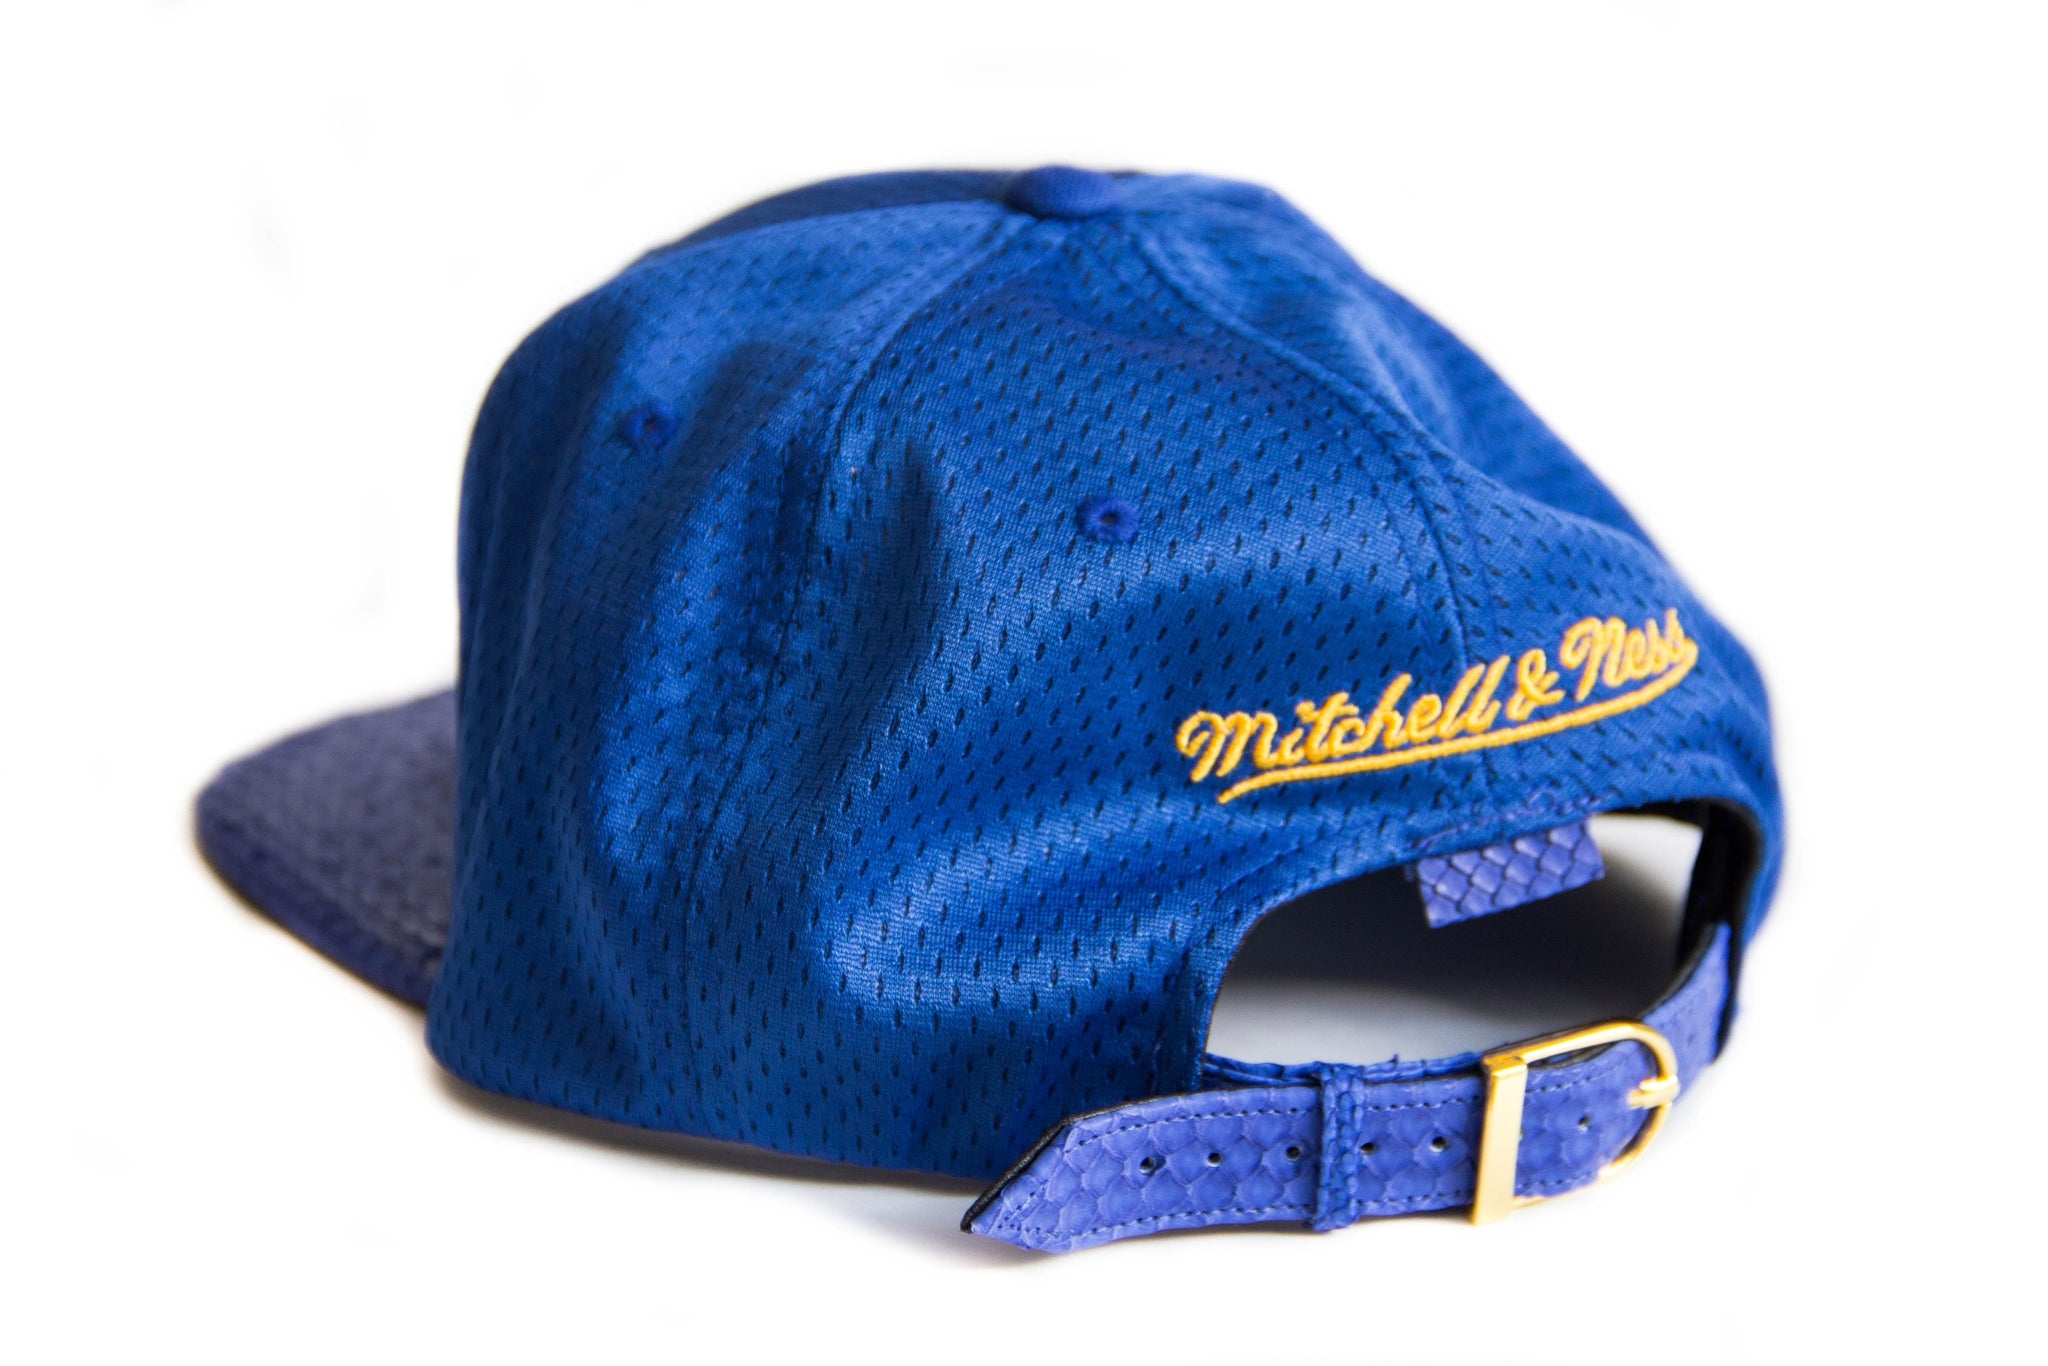 HATSURGEON x Mitchell & Ness Golden State Warriors Mesh Strapback (Blue)